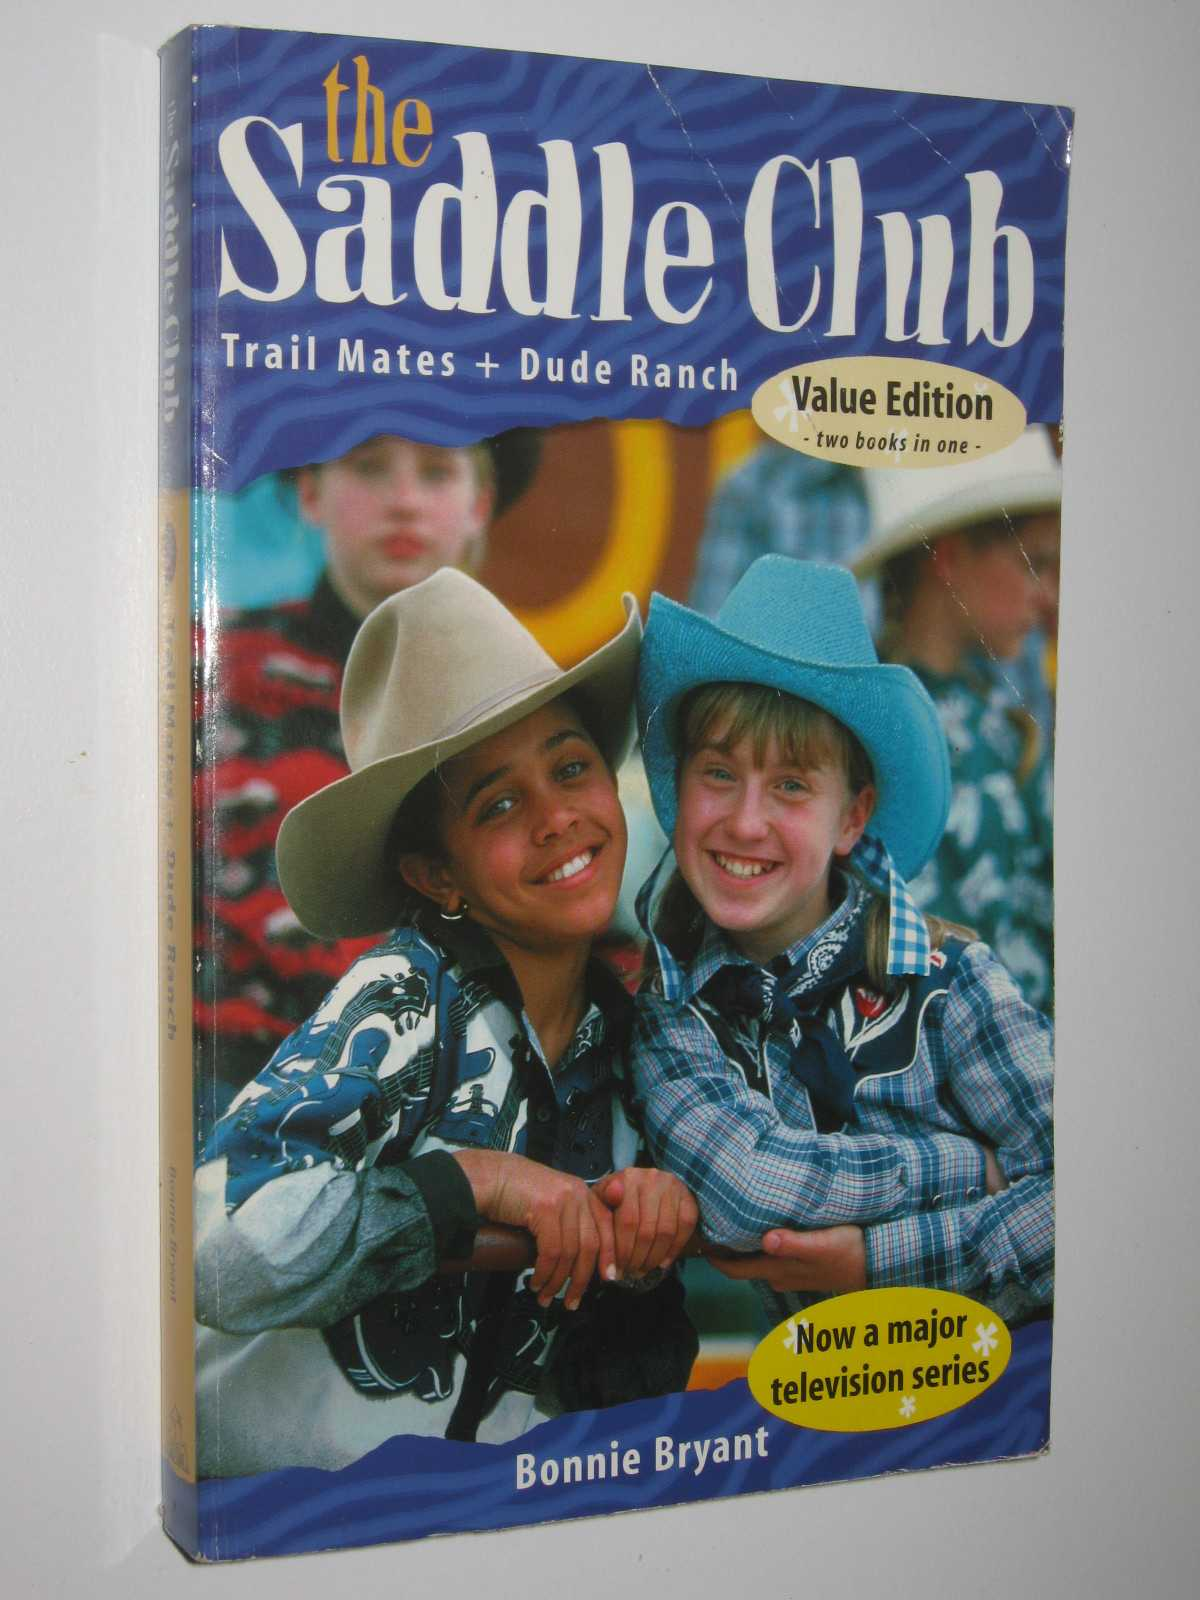 Image for Trail Mates + Dude Ranch - The Saddle Club Series